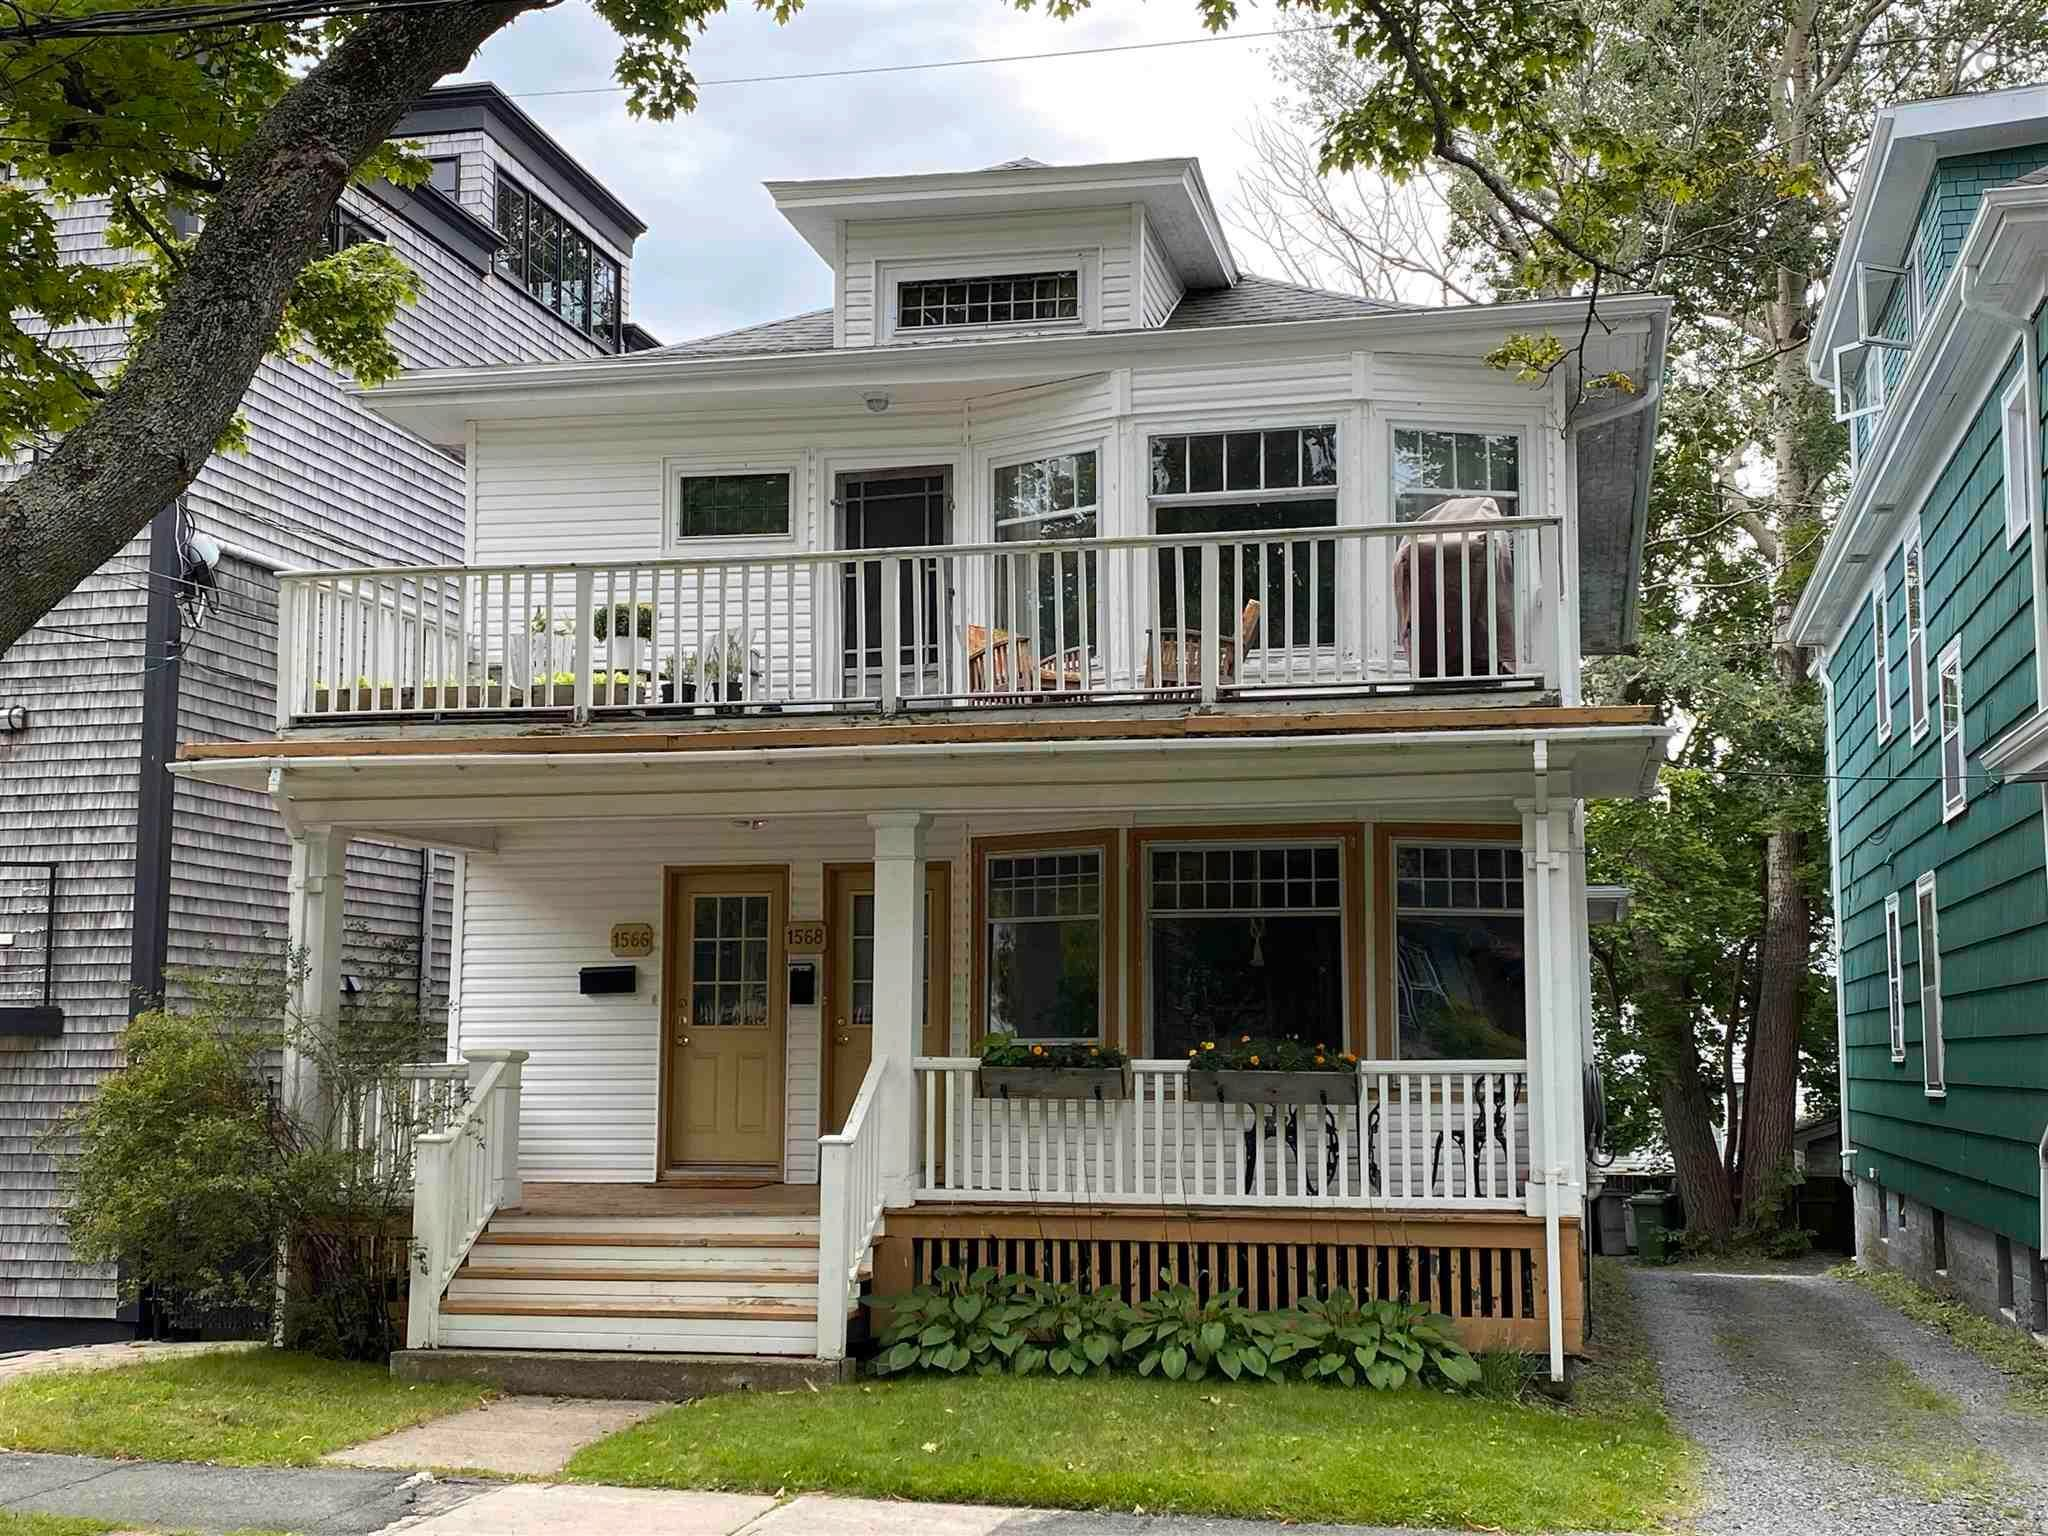 Main Photo: 1564 Larch Street in Halifax: 2-Halifax South Multi-Family for sale (Halifax-Dartmouth)  : MLS®# 202121774